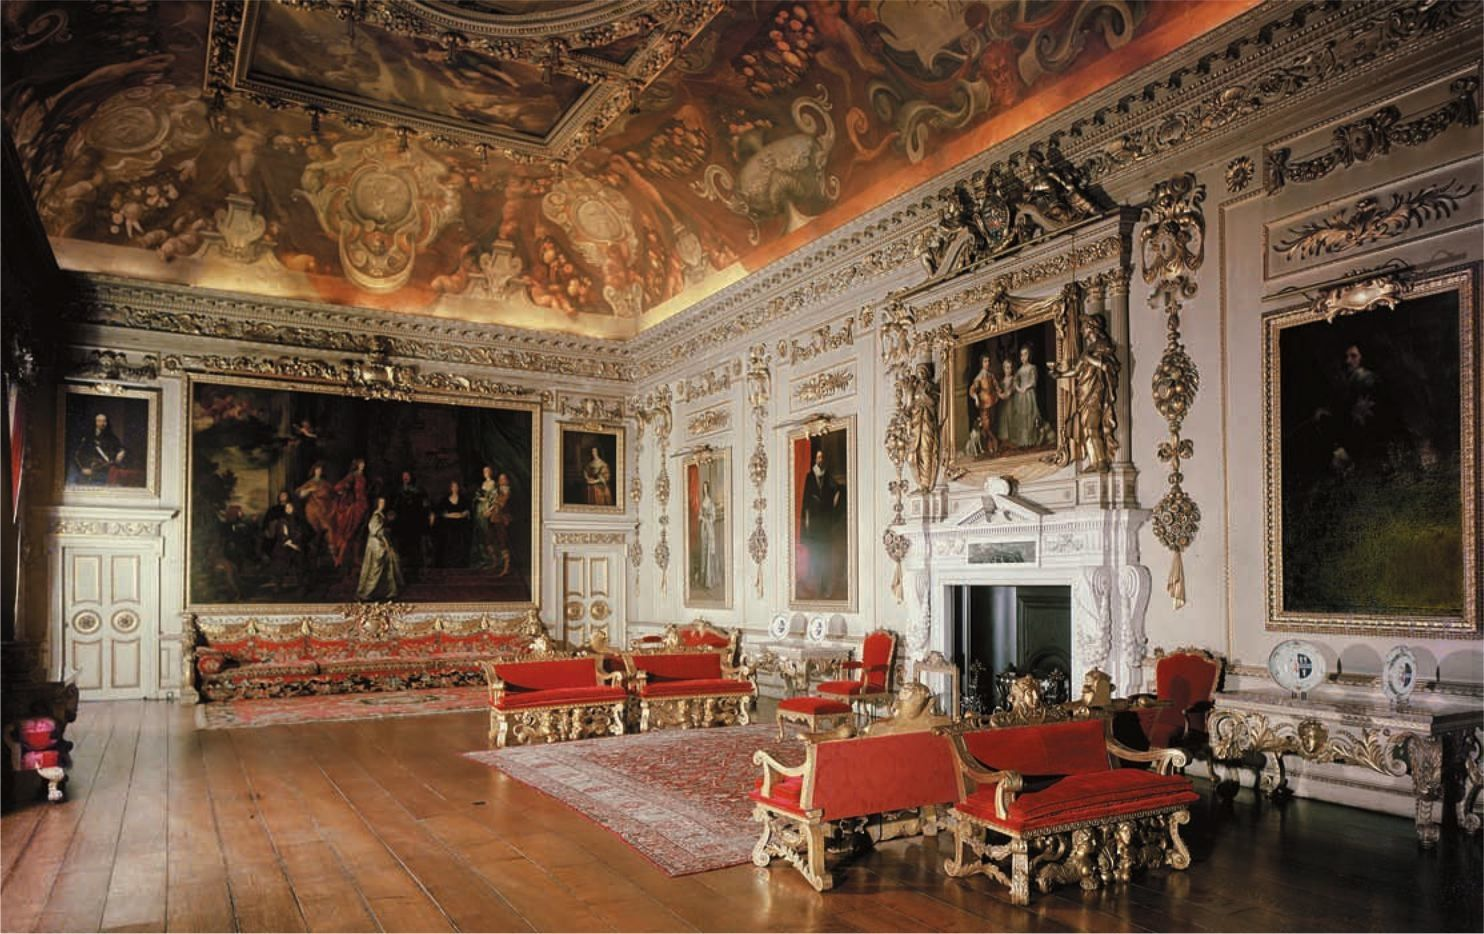 Innenarchitektur Renaissance decorative detailing was a big feature in renaissance interiors